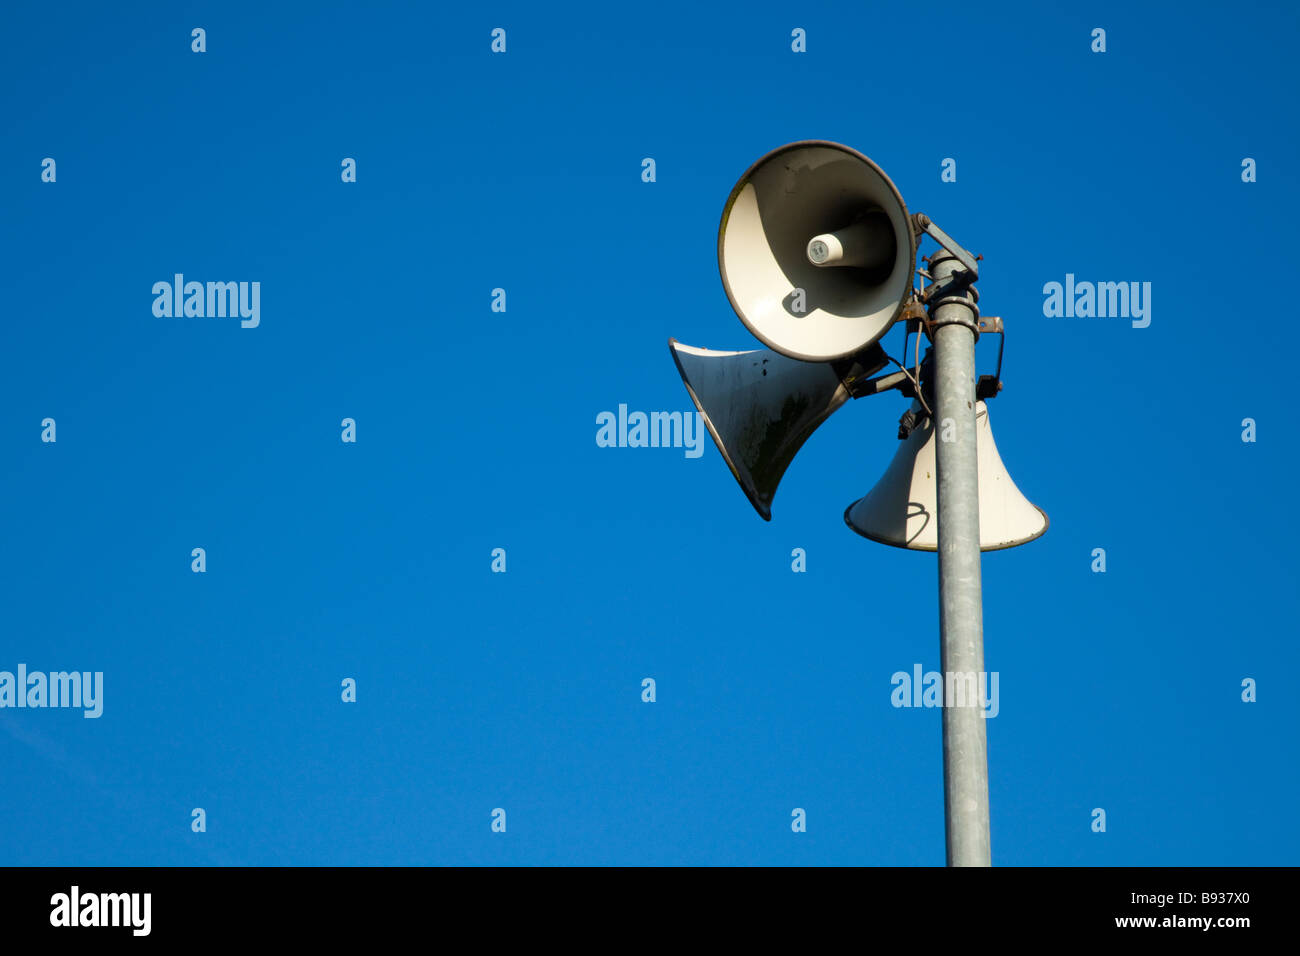 Loud tannoy speakers on a pole against a clear blue cloudless sky at Chester Race Course, Cheshire, England,UK - Stock Image